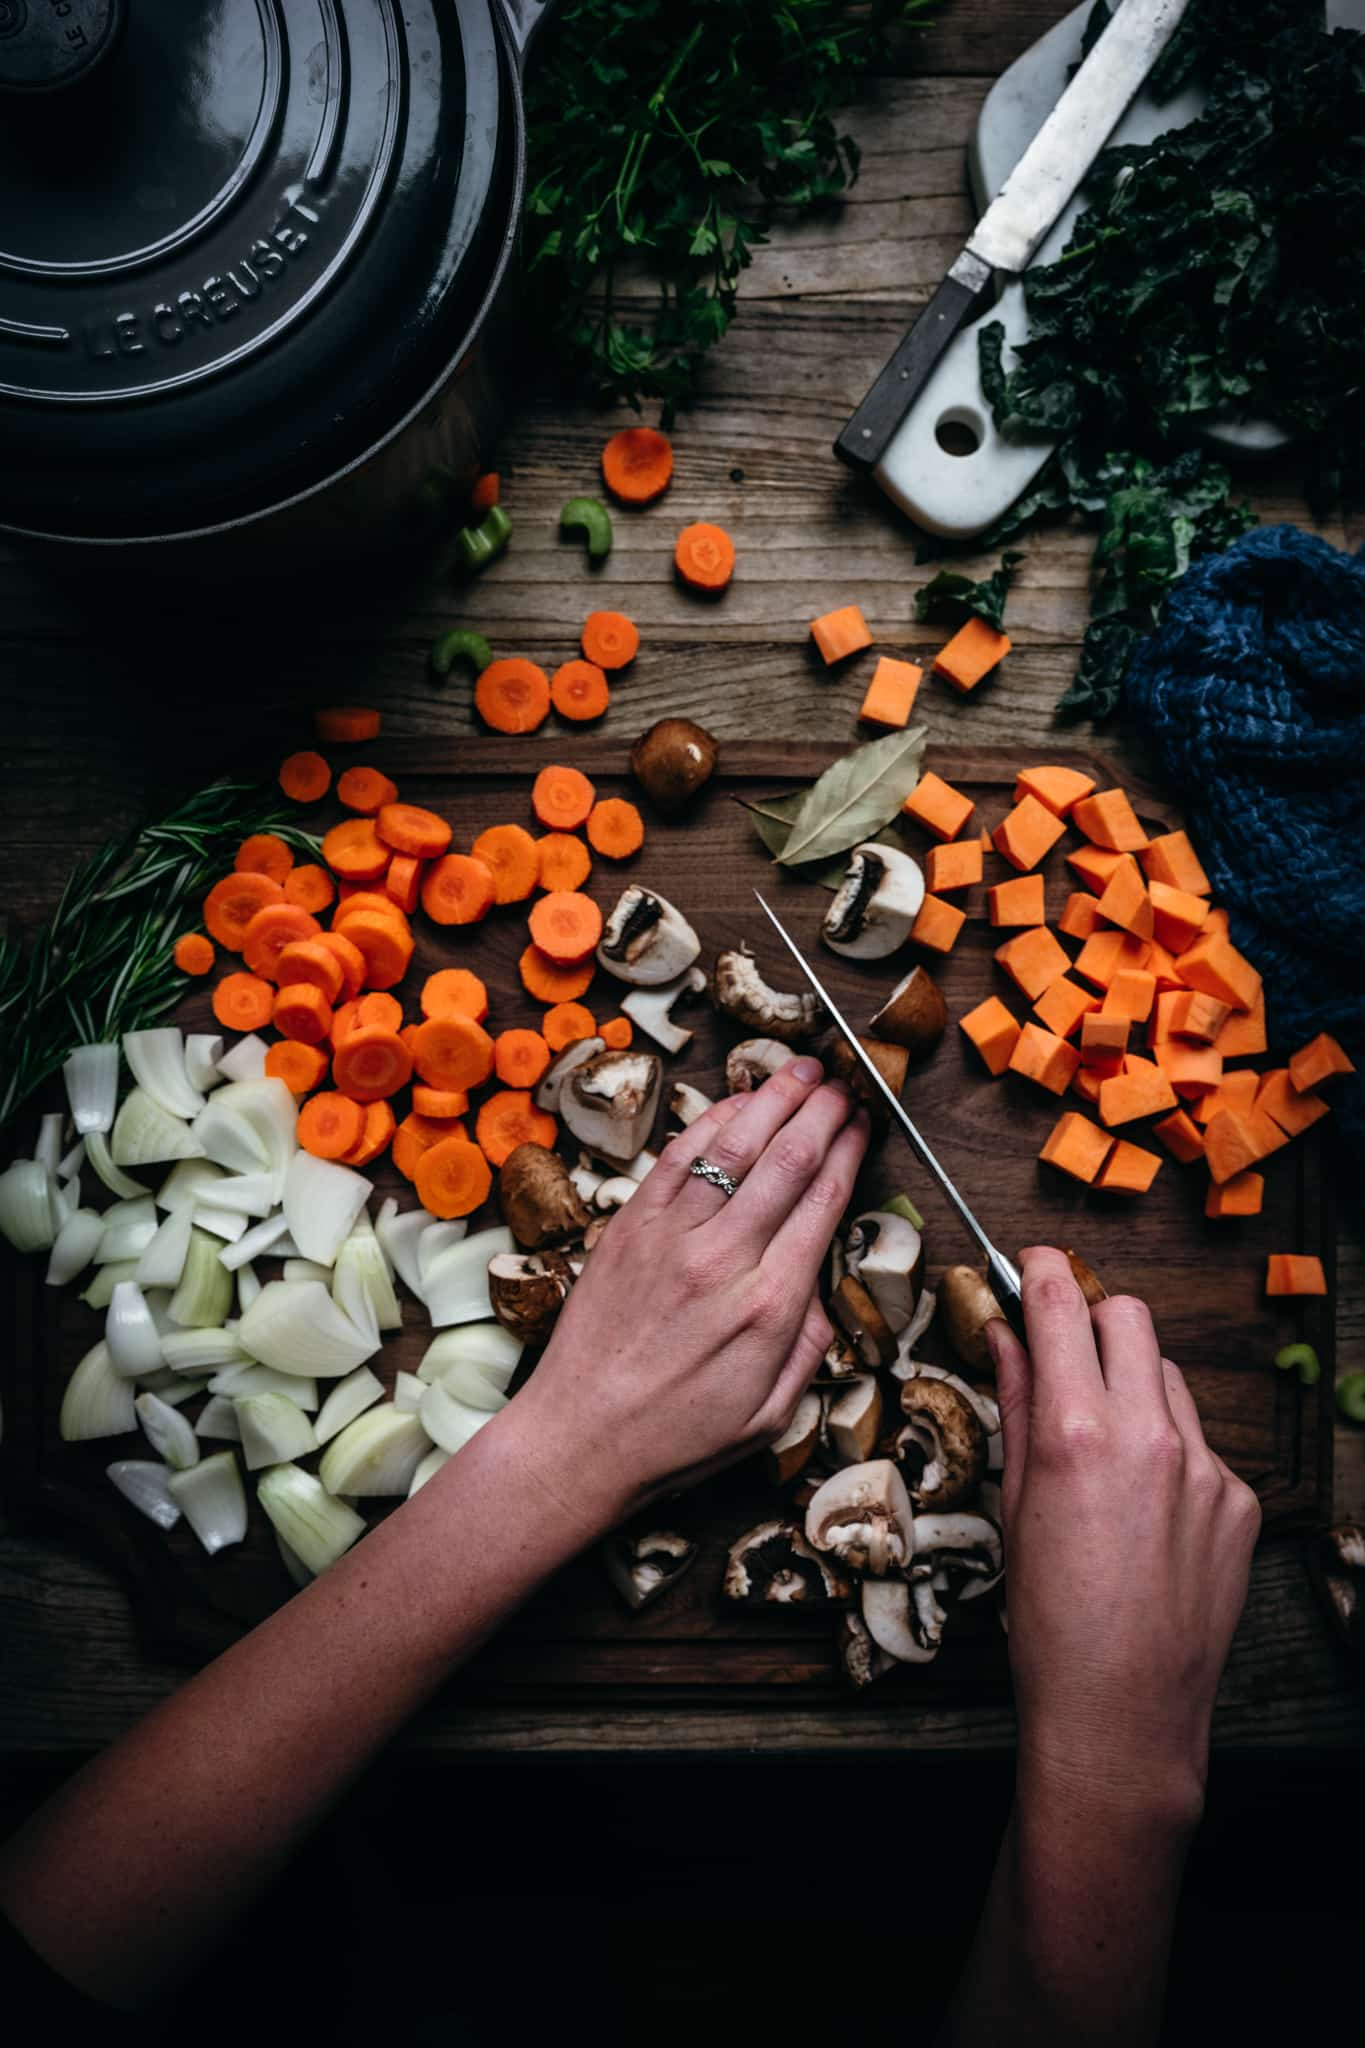 overhead view of person cutting mushrooms and other fall vegetables on a wood cutting board